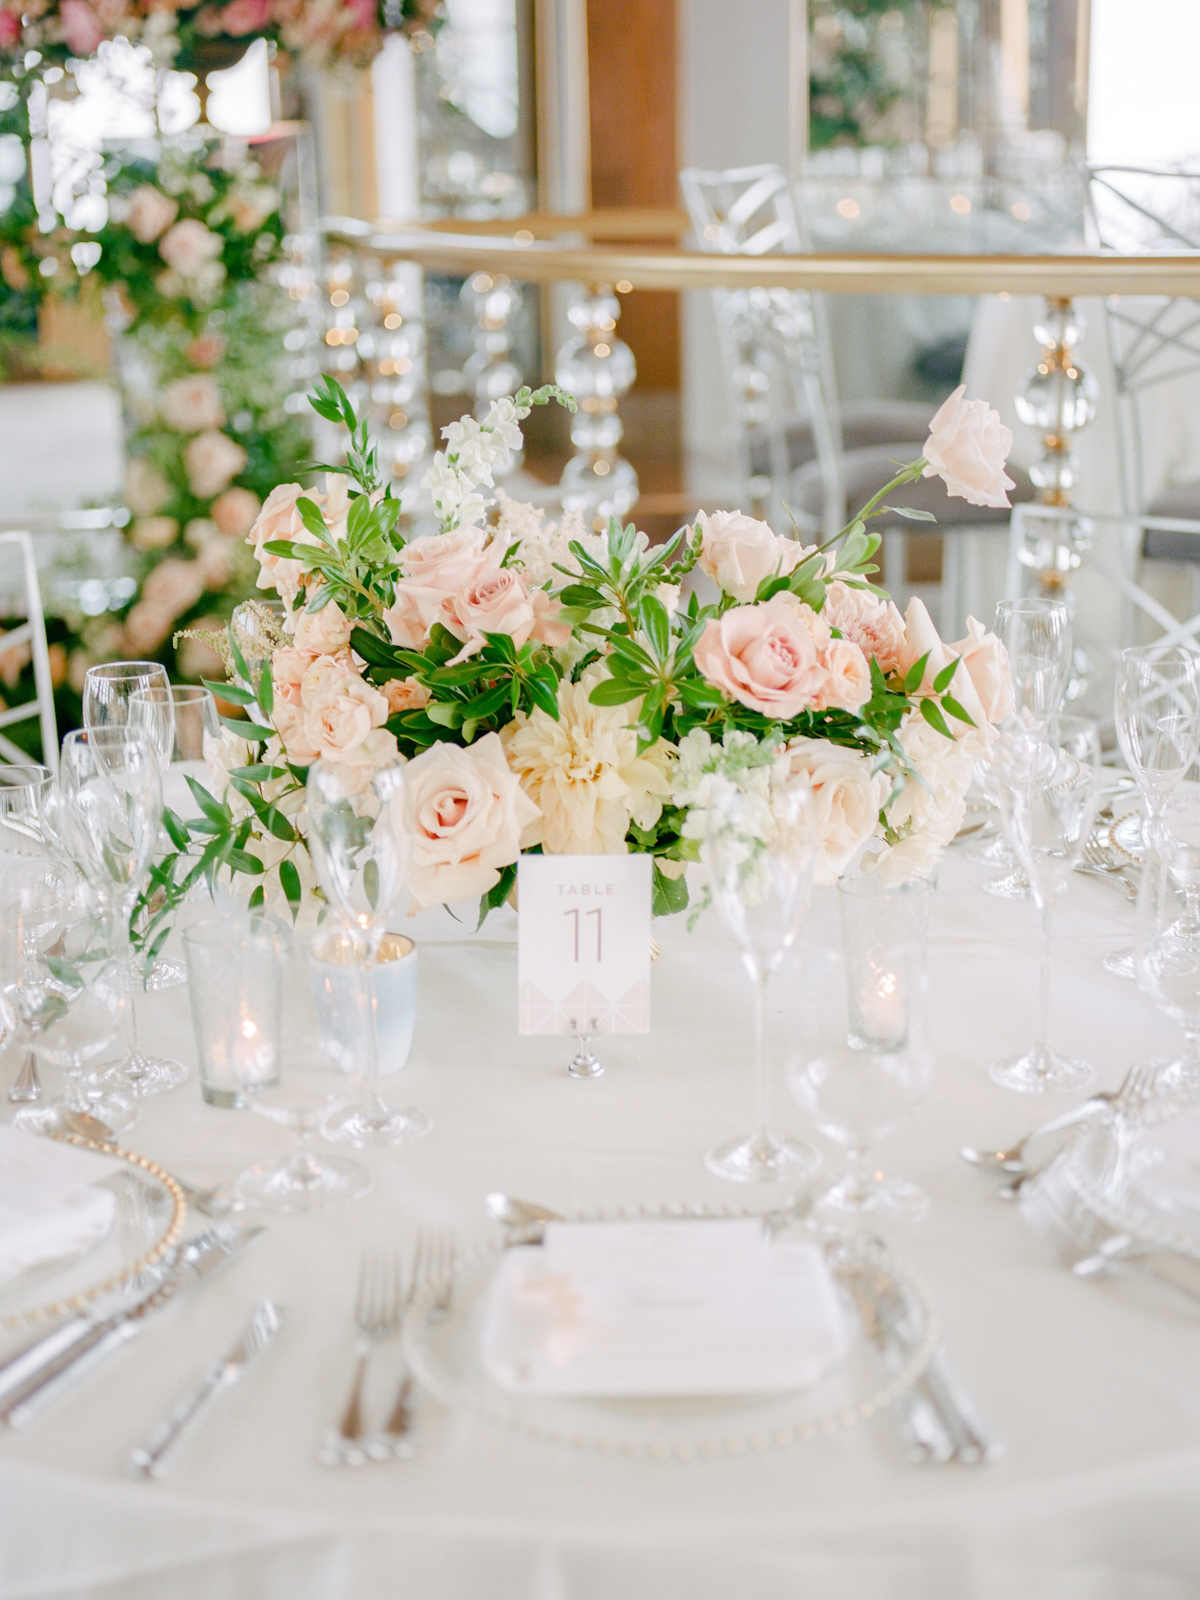 Rainbow Room wedding tablescape with flowers, votives, menus and vellum place cards